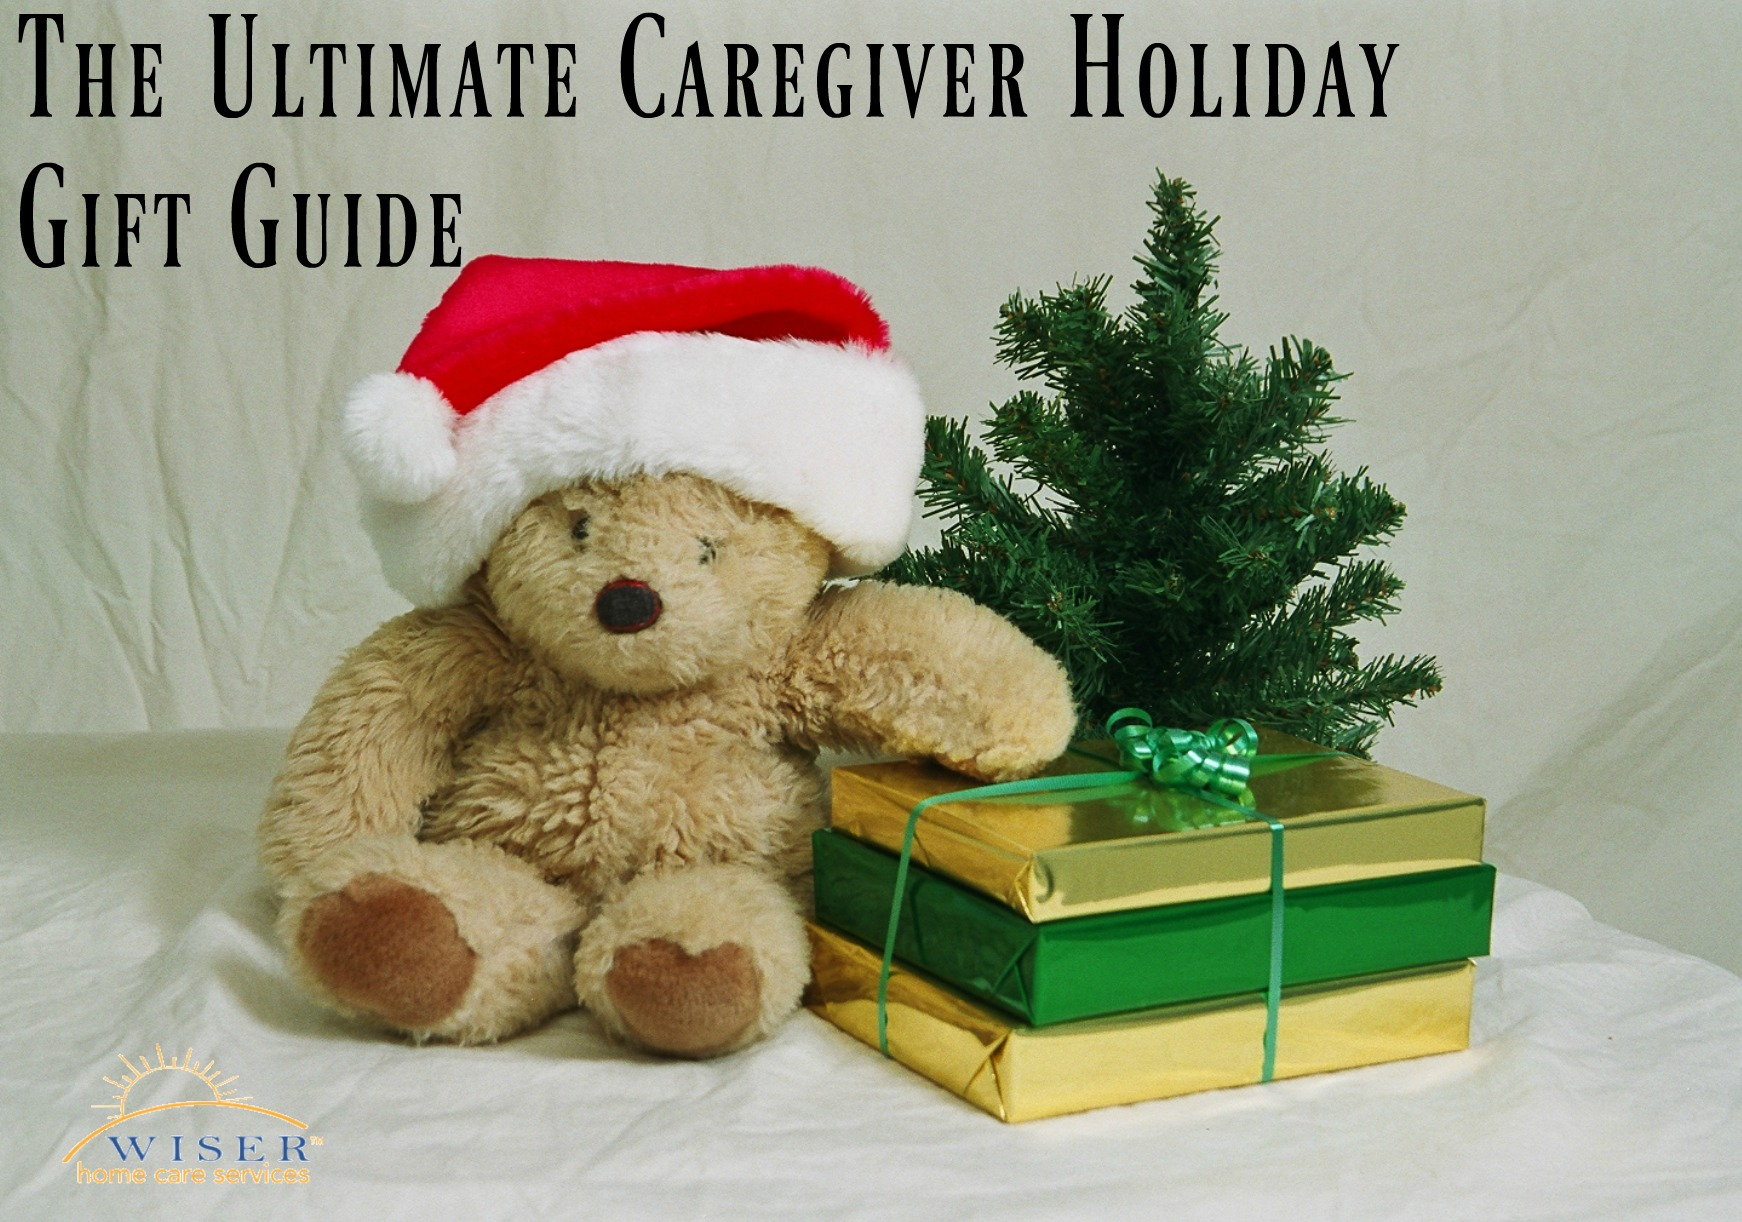 Christmas is just around the corner. If you're struggling to find the perfect gift for the caregiver in your life our ultimate gift guide will help.